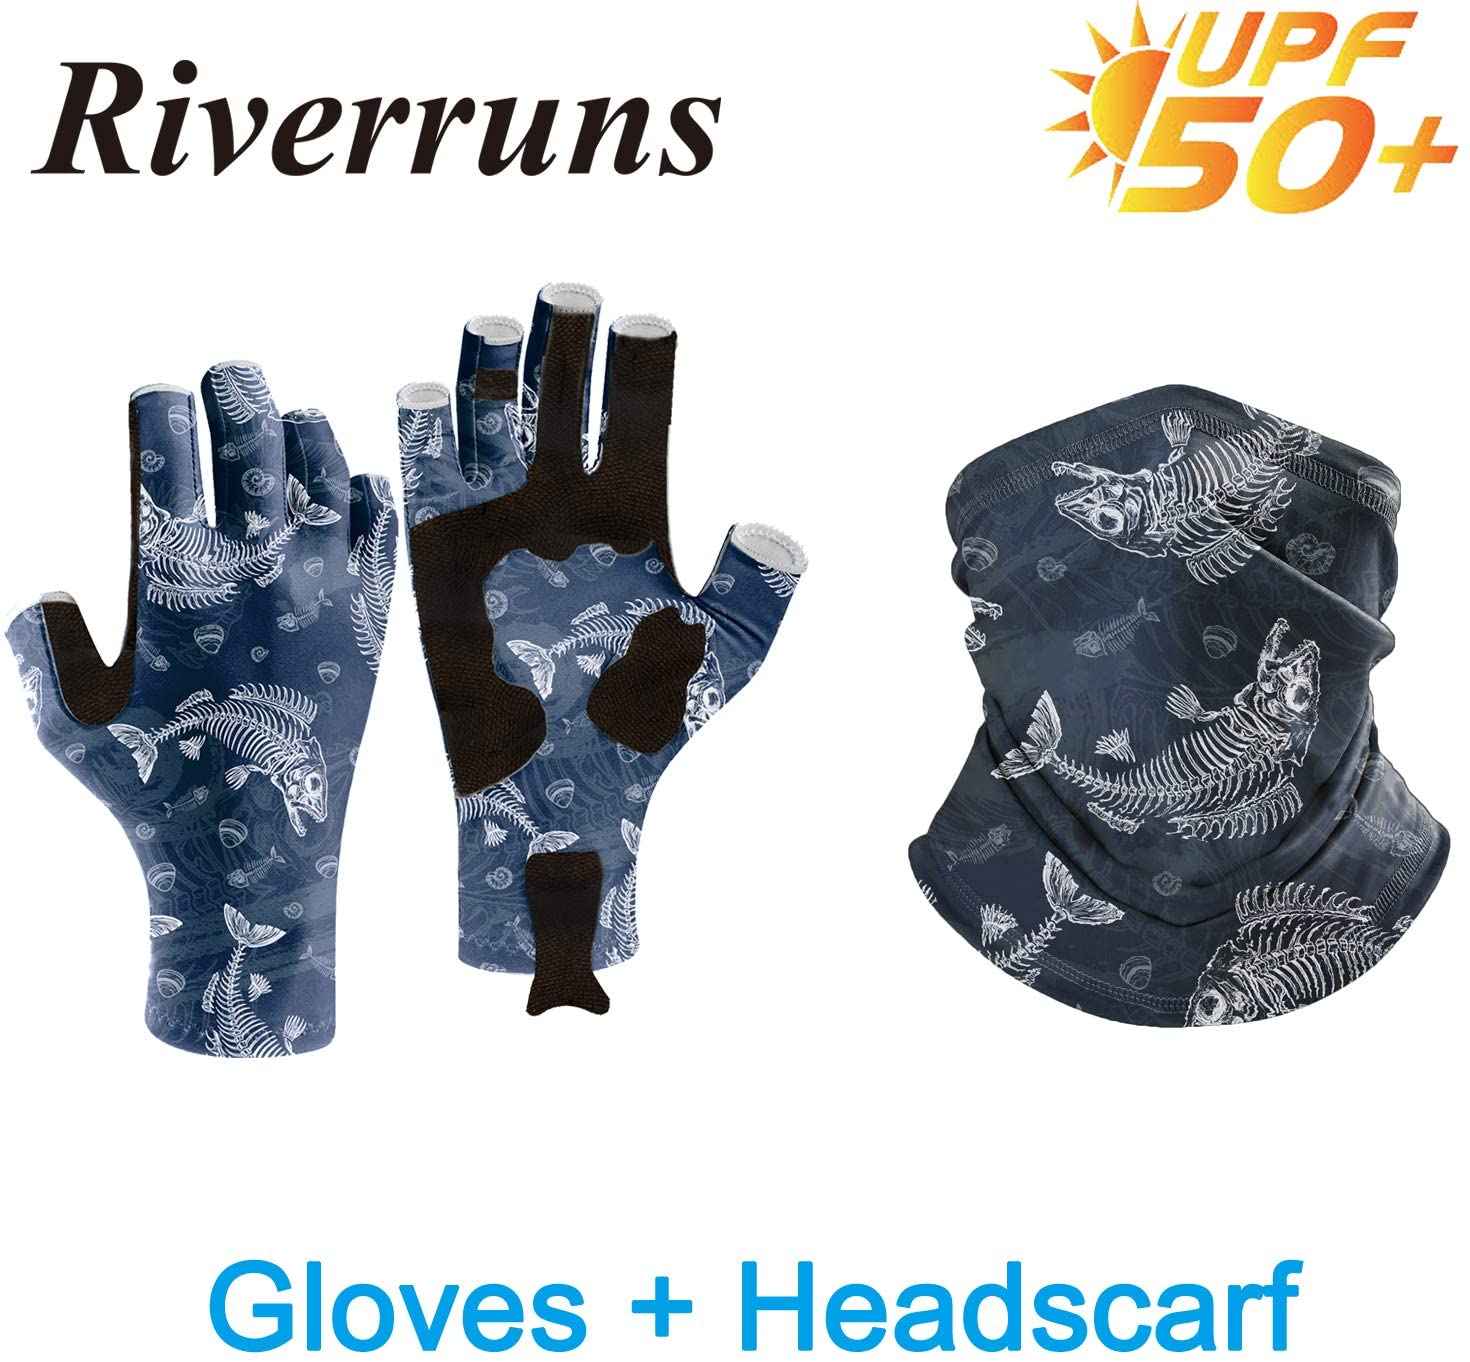 Riverruns UPF 50+ Fingerless Fishing Gloves with Headscarf Neck Gaiter- Fly Fishing Gloves Sun Gloves and Neck Gaiter for Men and Women Outdoor, Kayaking, Rowing, Sailing, Cycling and Driving.